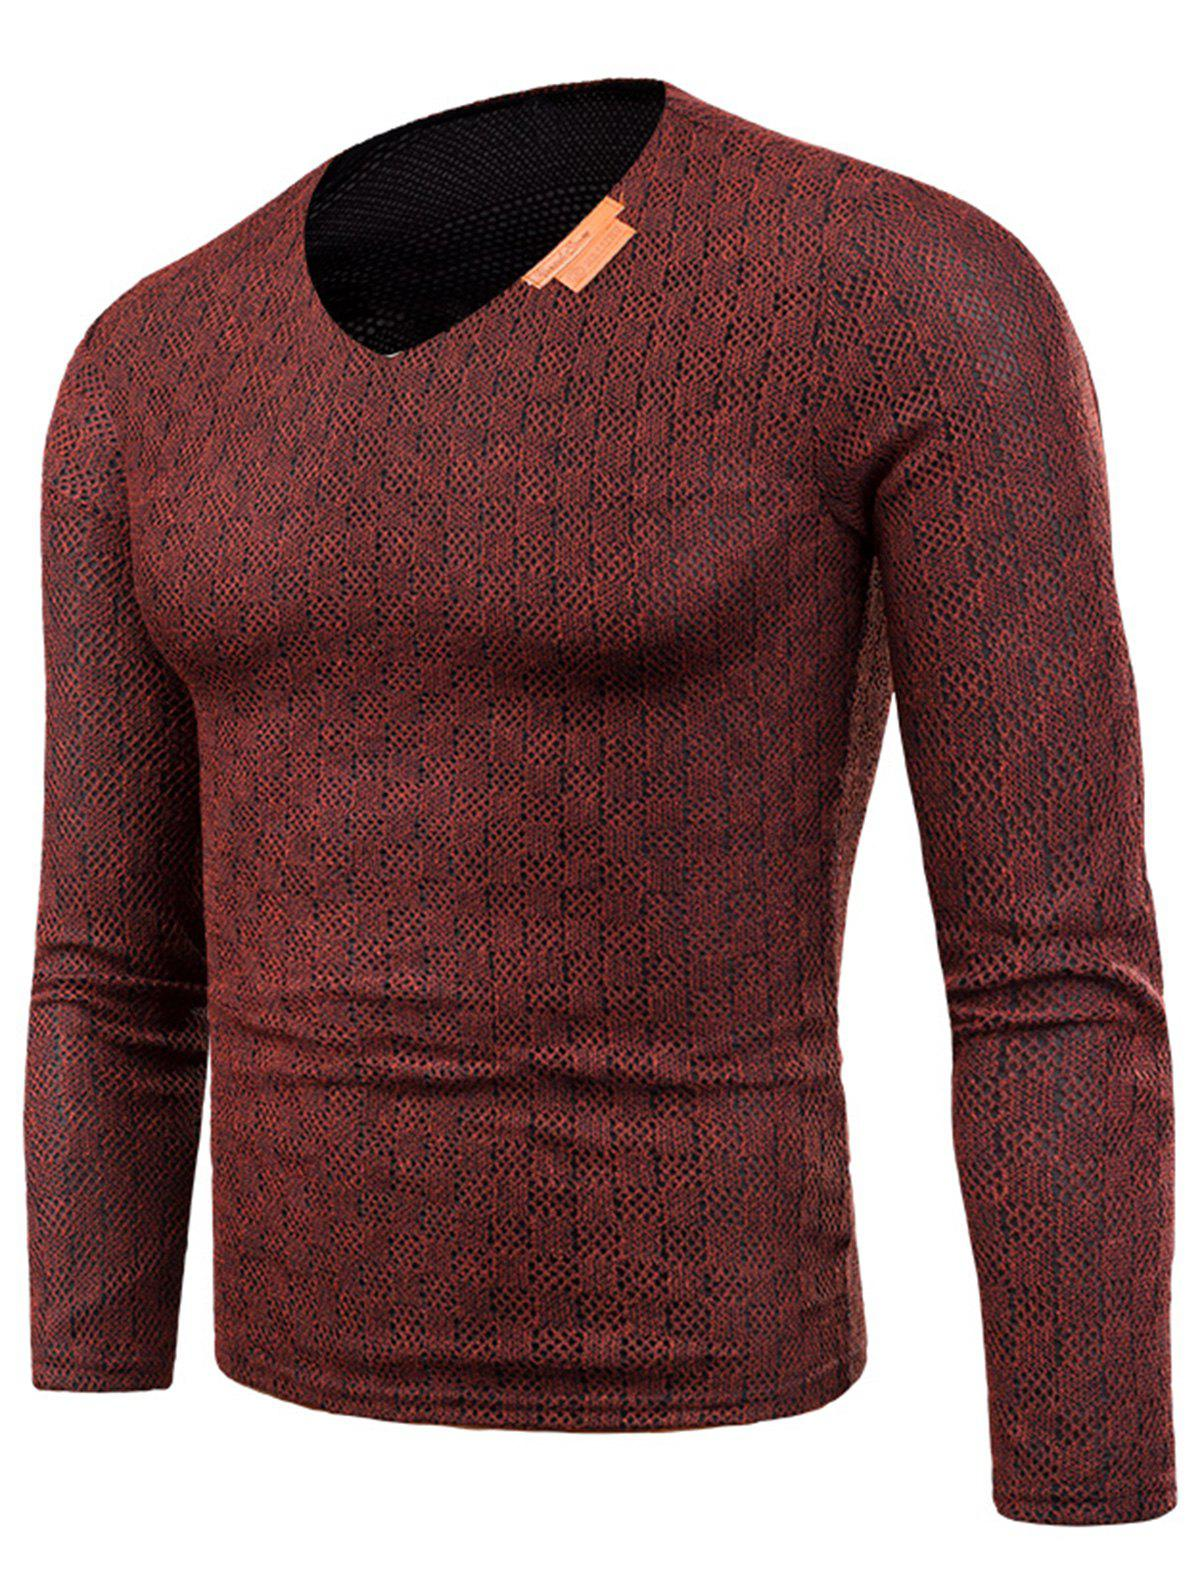 Fashion Knitted V Neck Long Sleeve Applique T-shirt